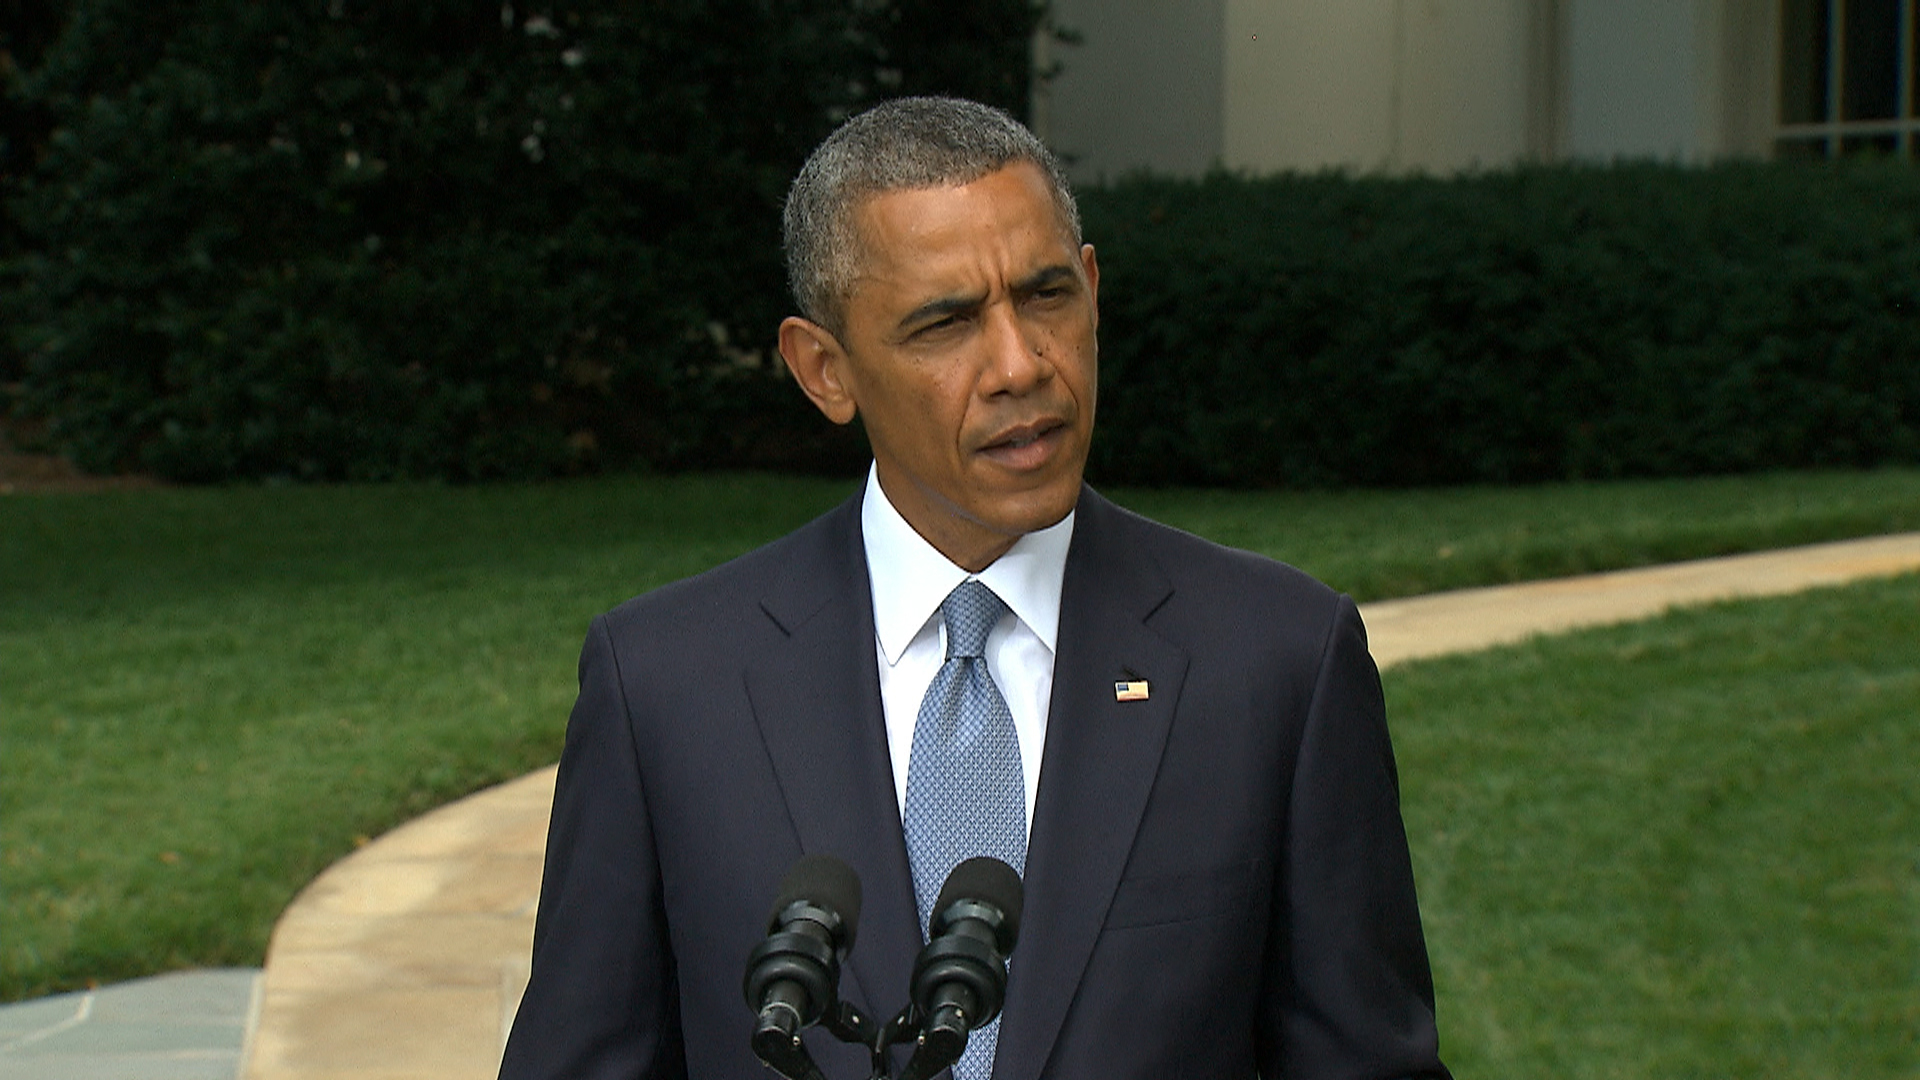 Obama: 'Burden Is on Russia' to Push for Access to Jet Crash Site